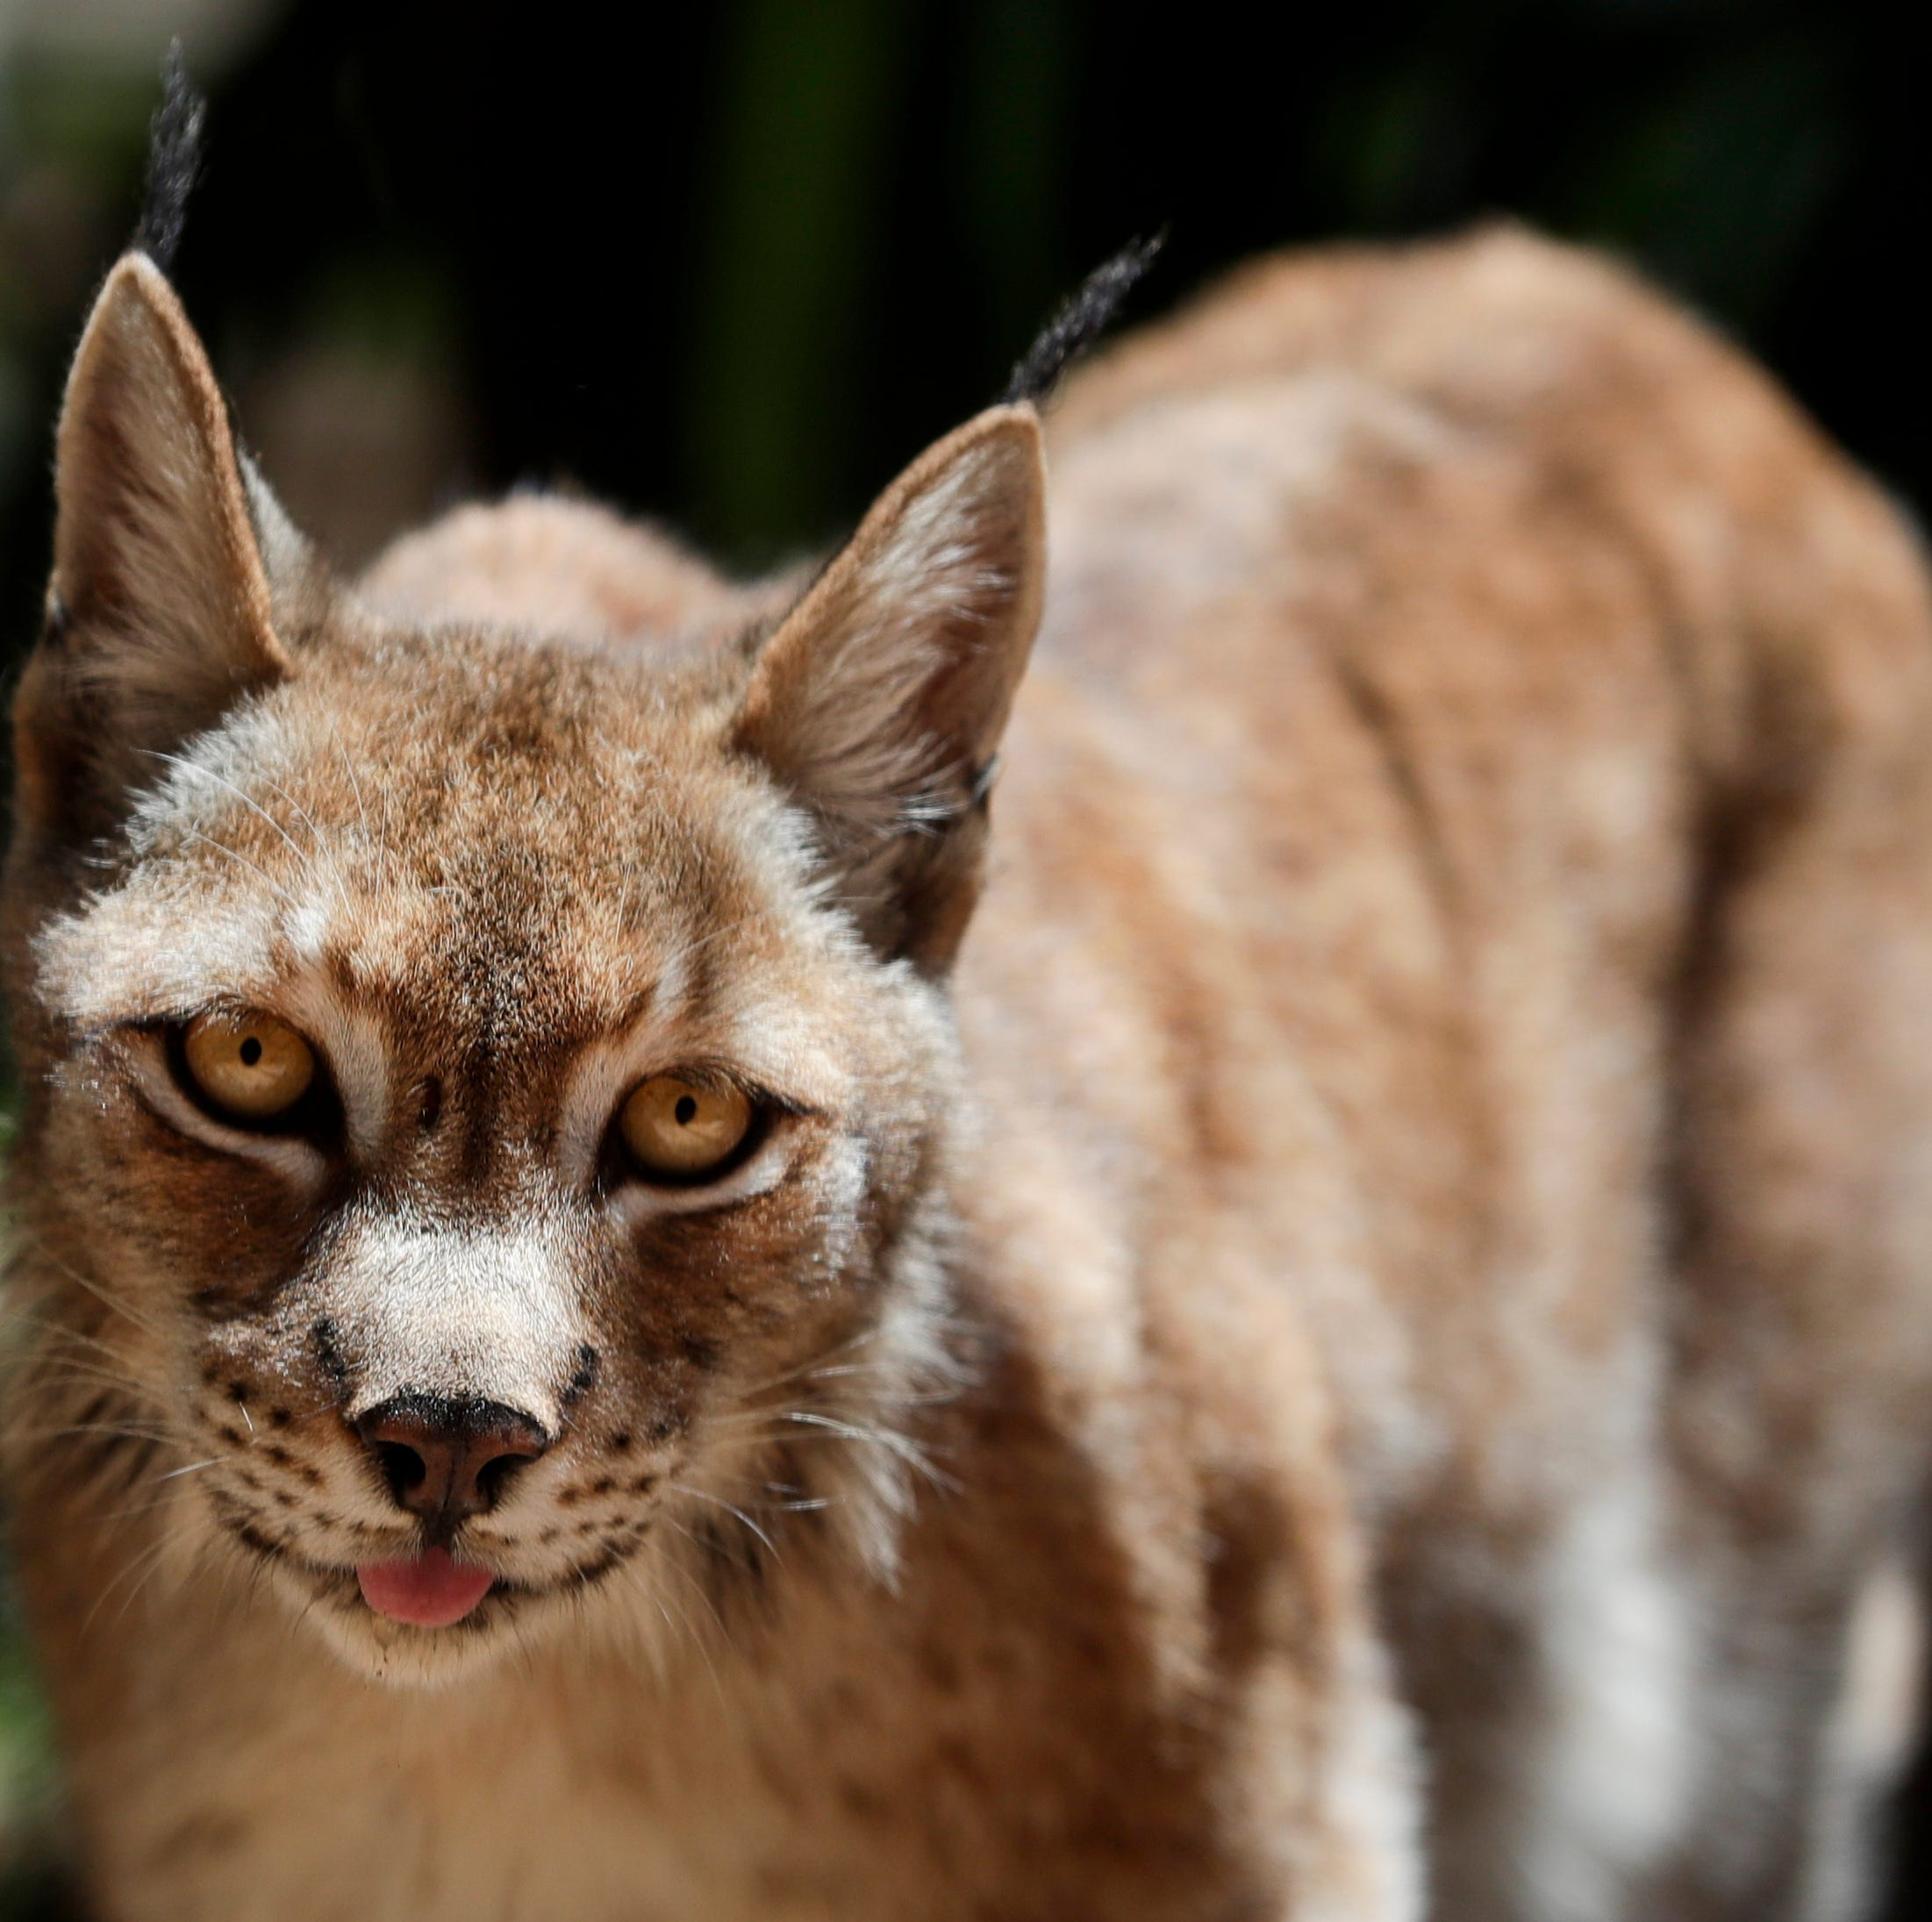 Tallahassee Museum reveals latest guest animal